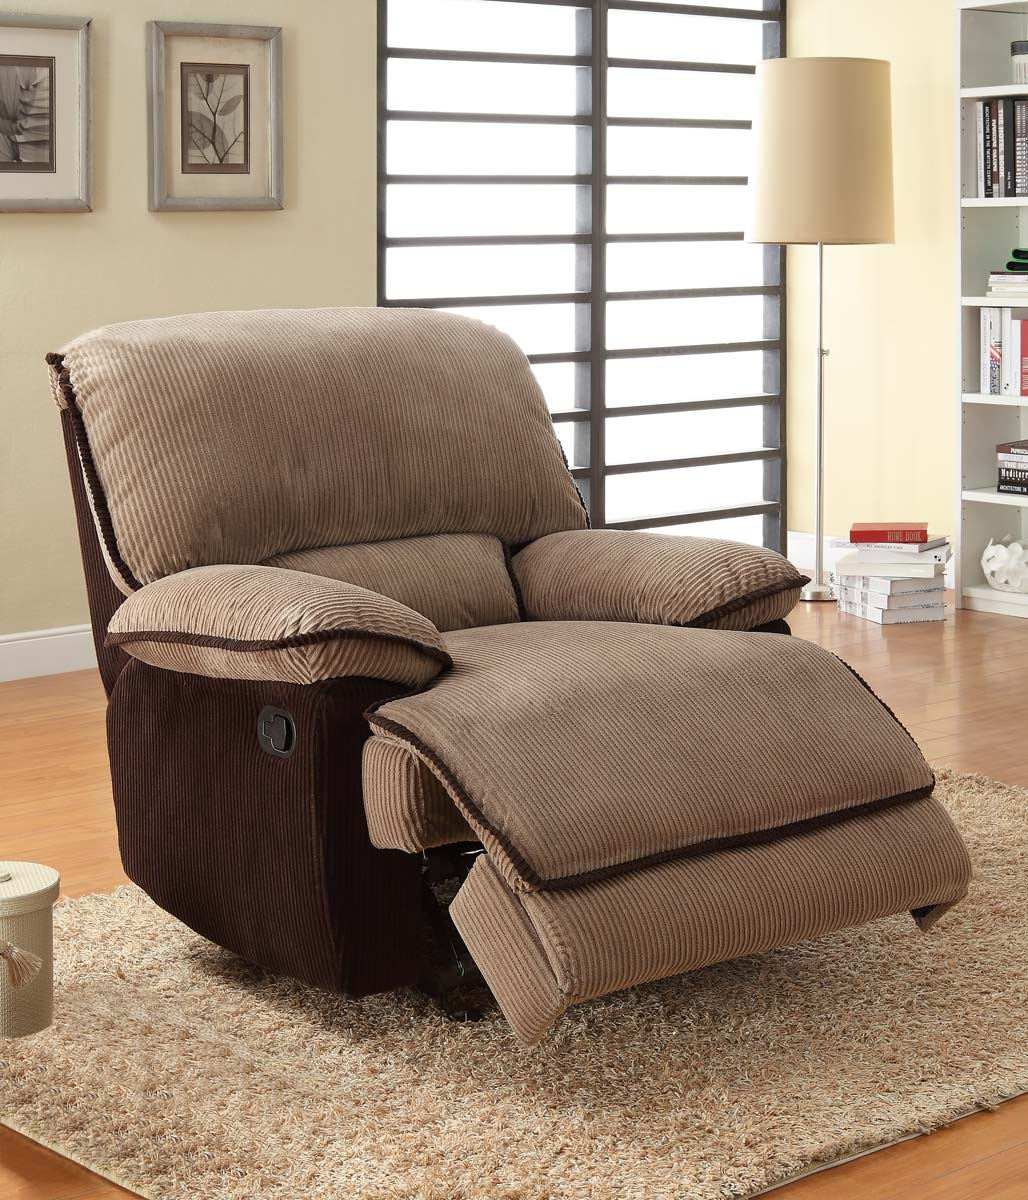 Image of: Images of Glider Recliner Chair